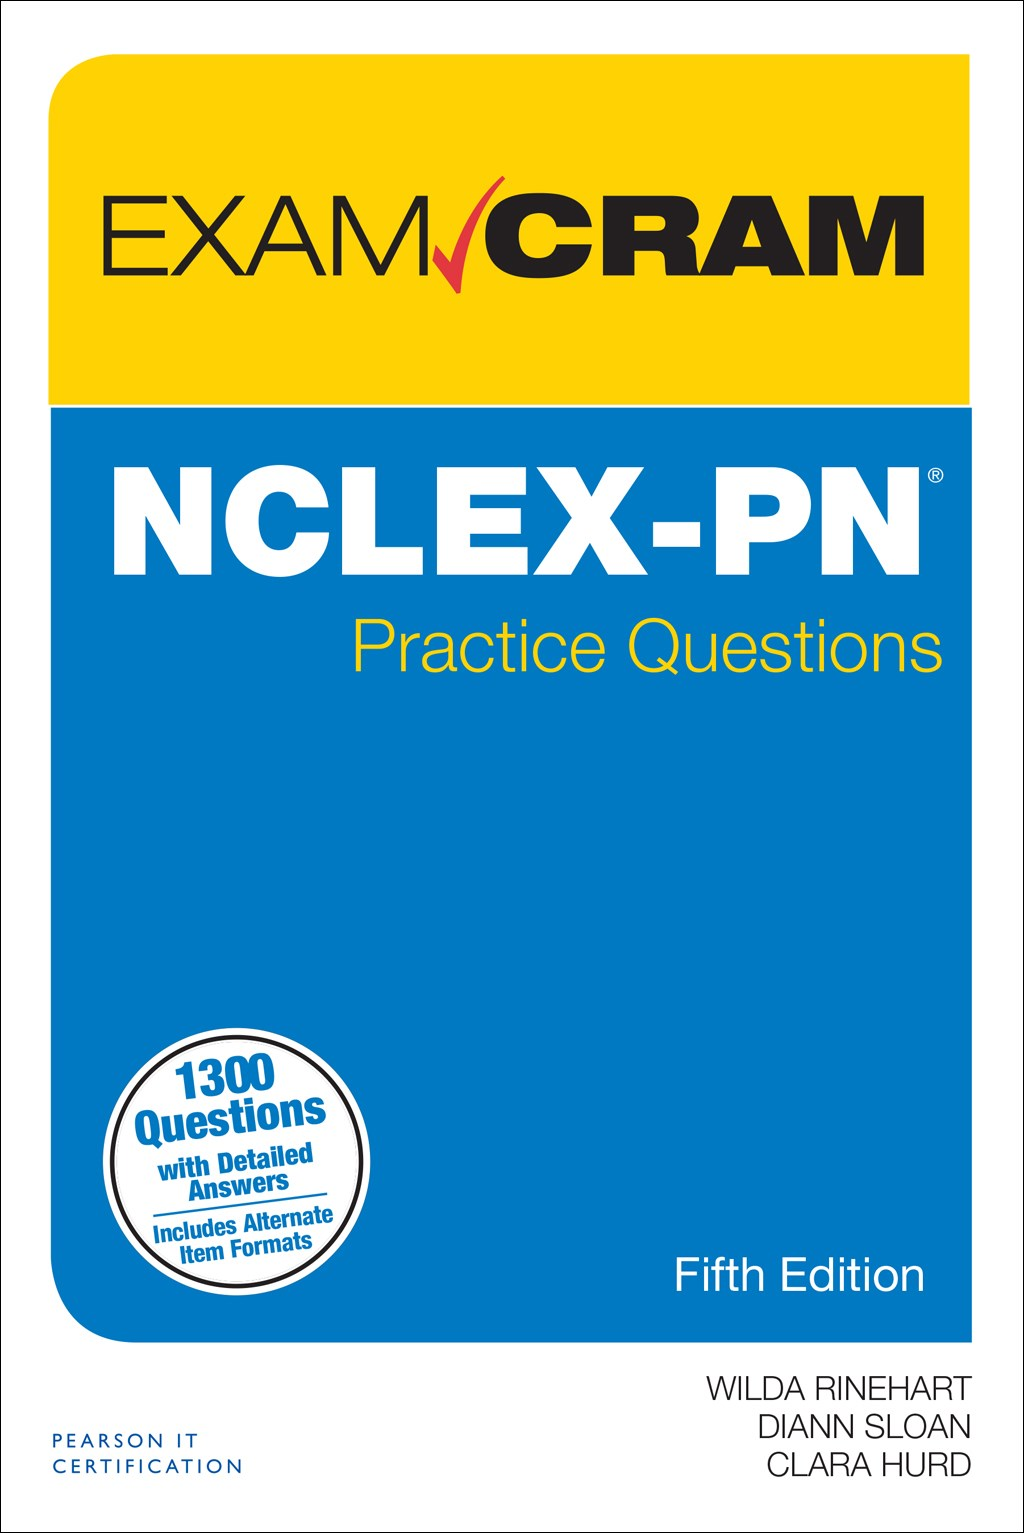 NCLEX-PN Practice Questions Exam Cram, 5th Edition